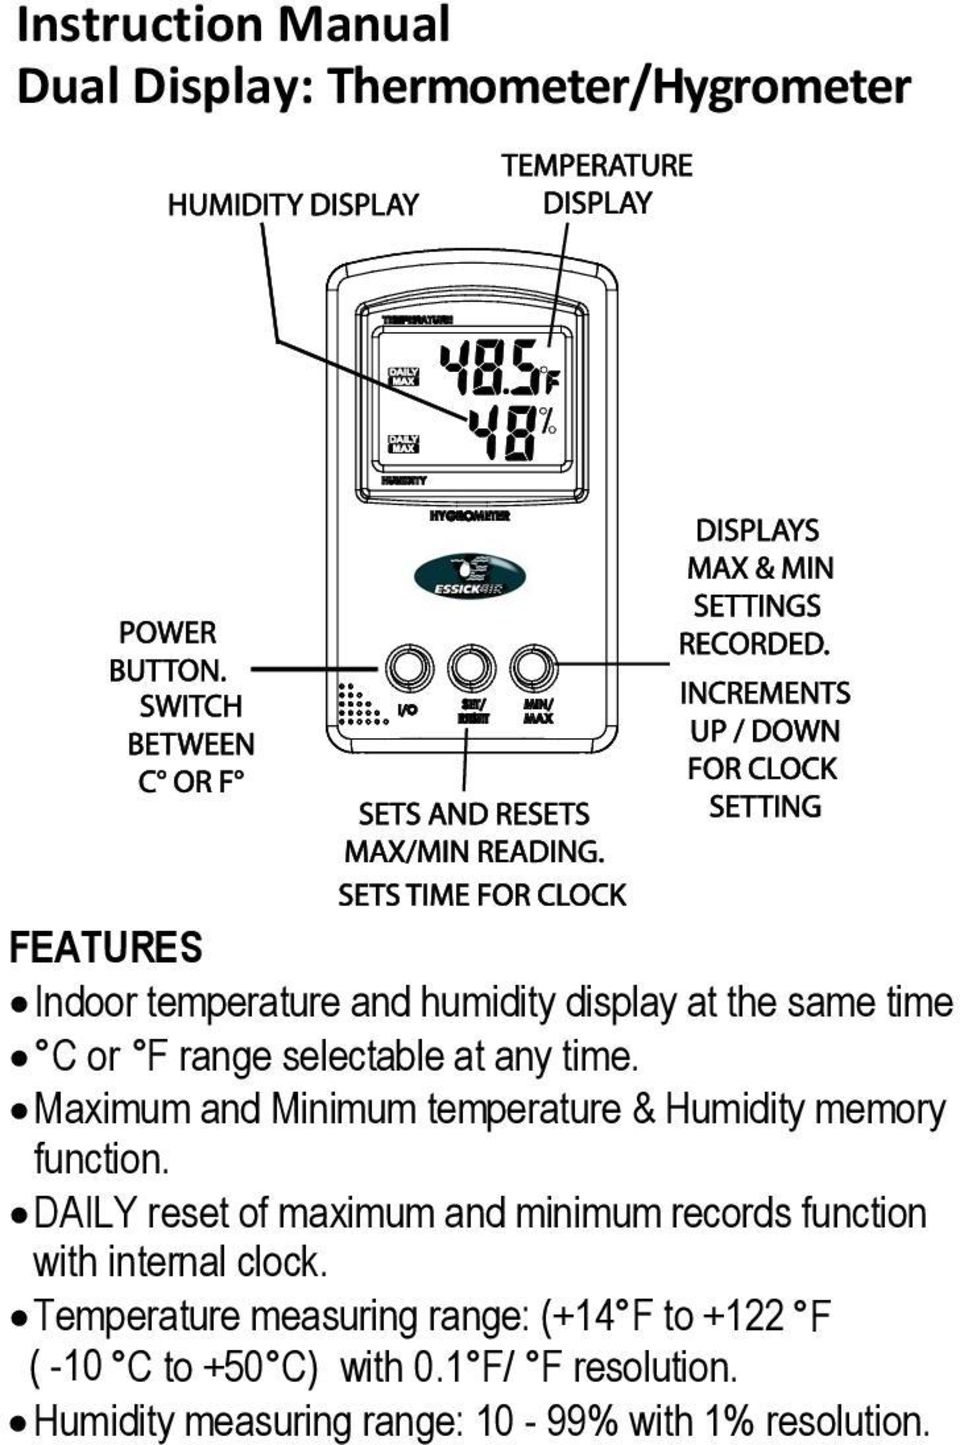 Maximum and Minimum temperature & Humidity memory function.